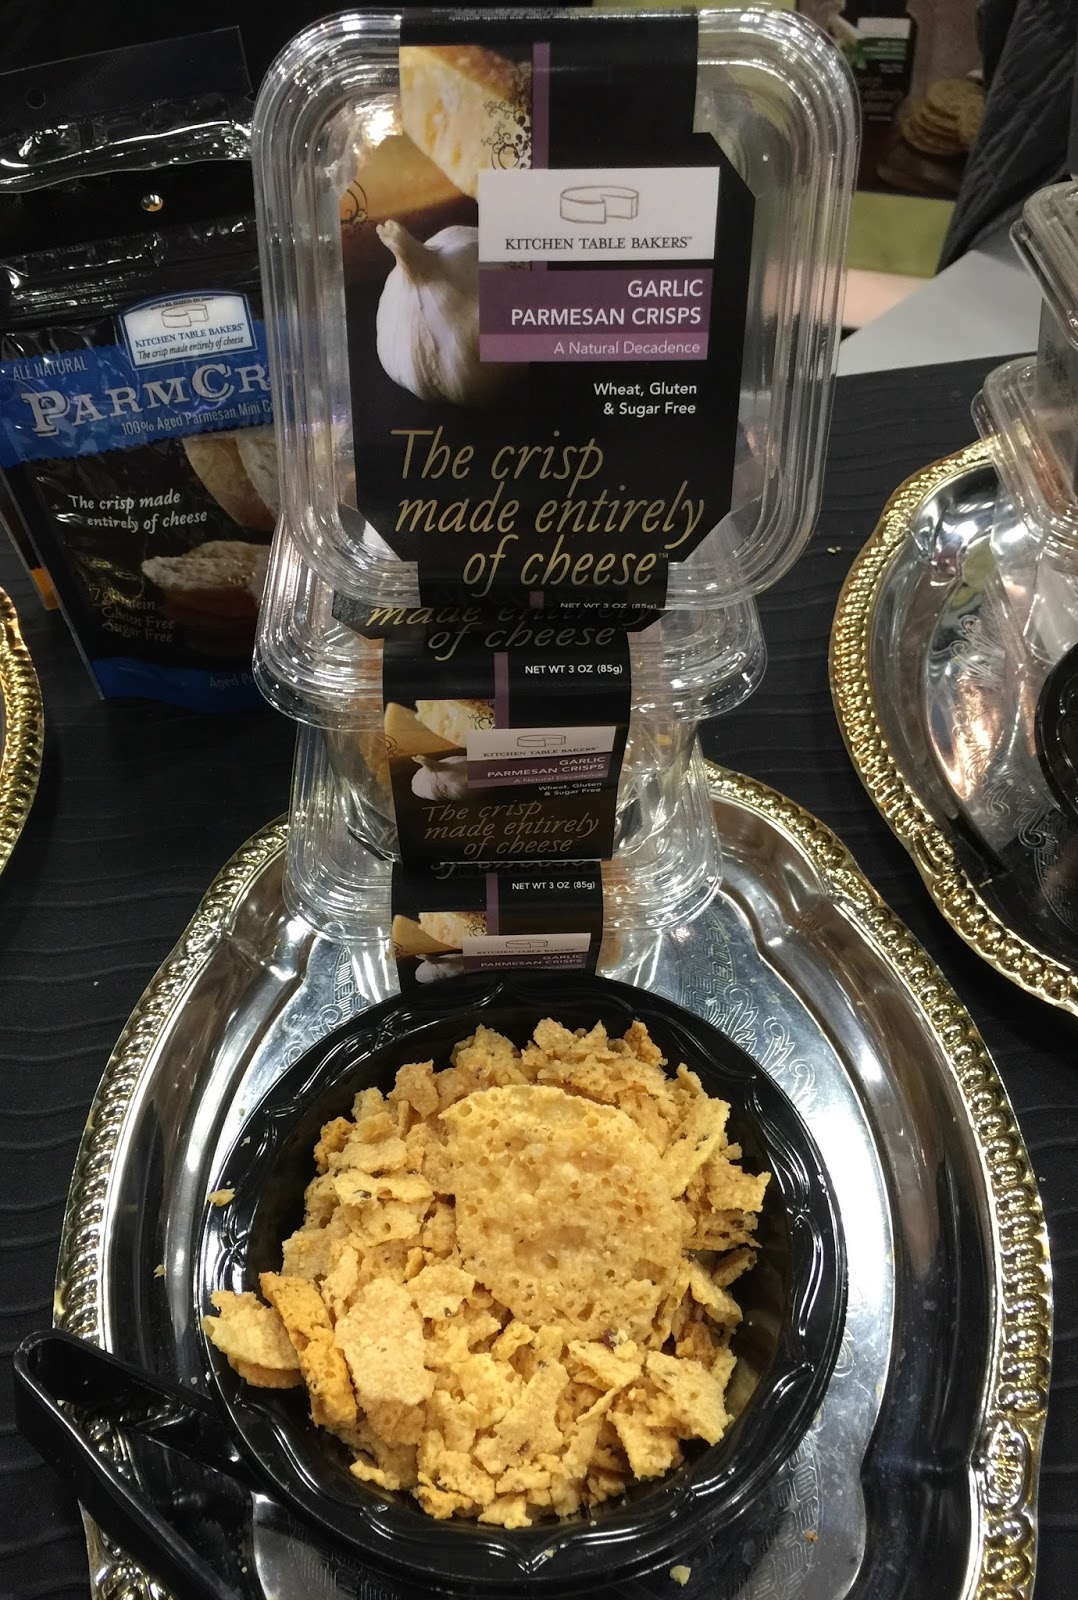 kitchen table bakers at fancy food kitchen table bakers Kitchen Table Bakers brand crackers are popular because they are Gluten free and have a good cheesy taste